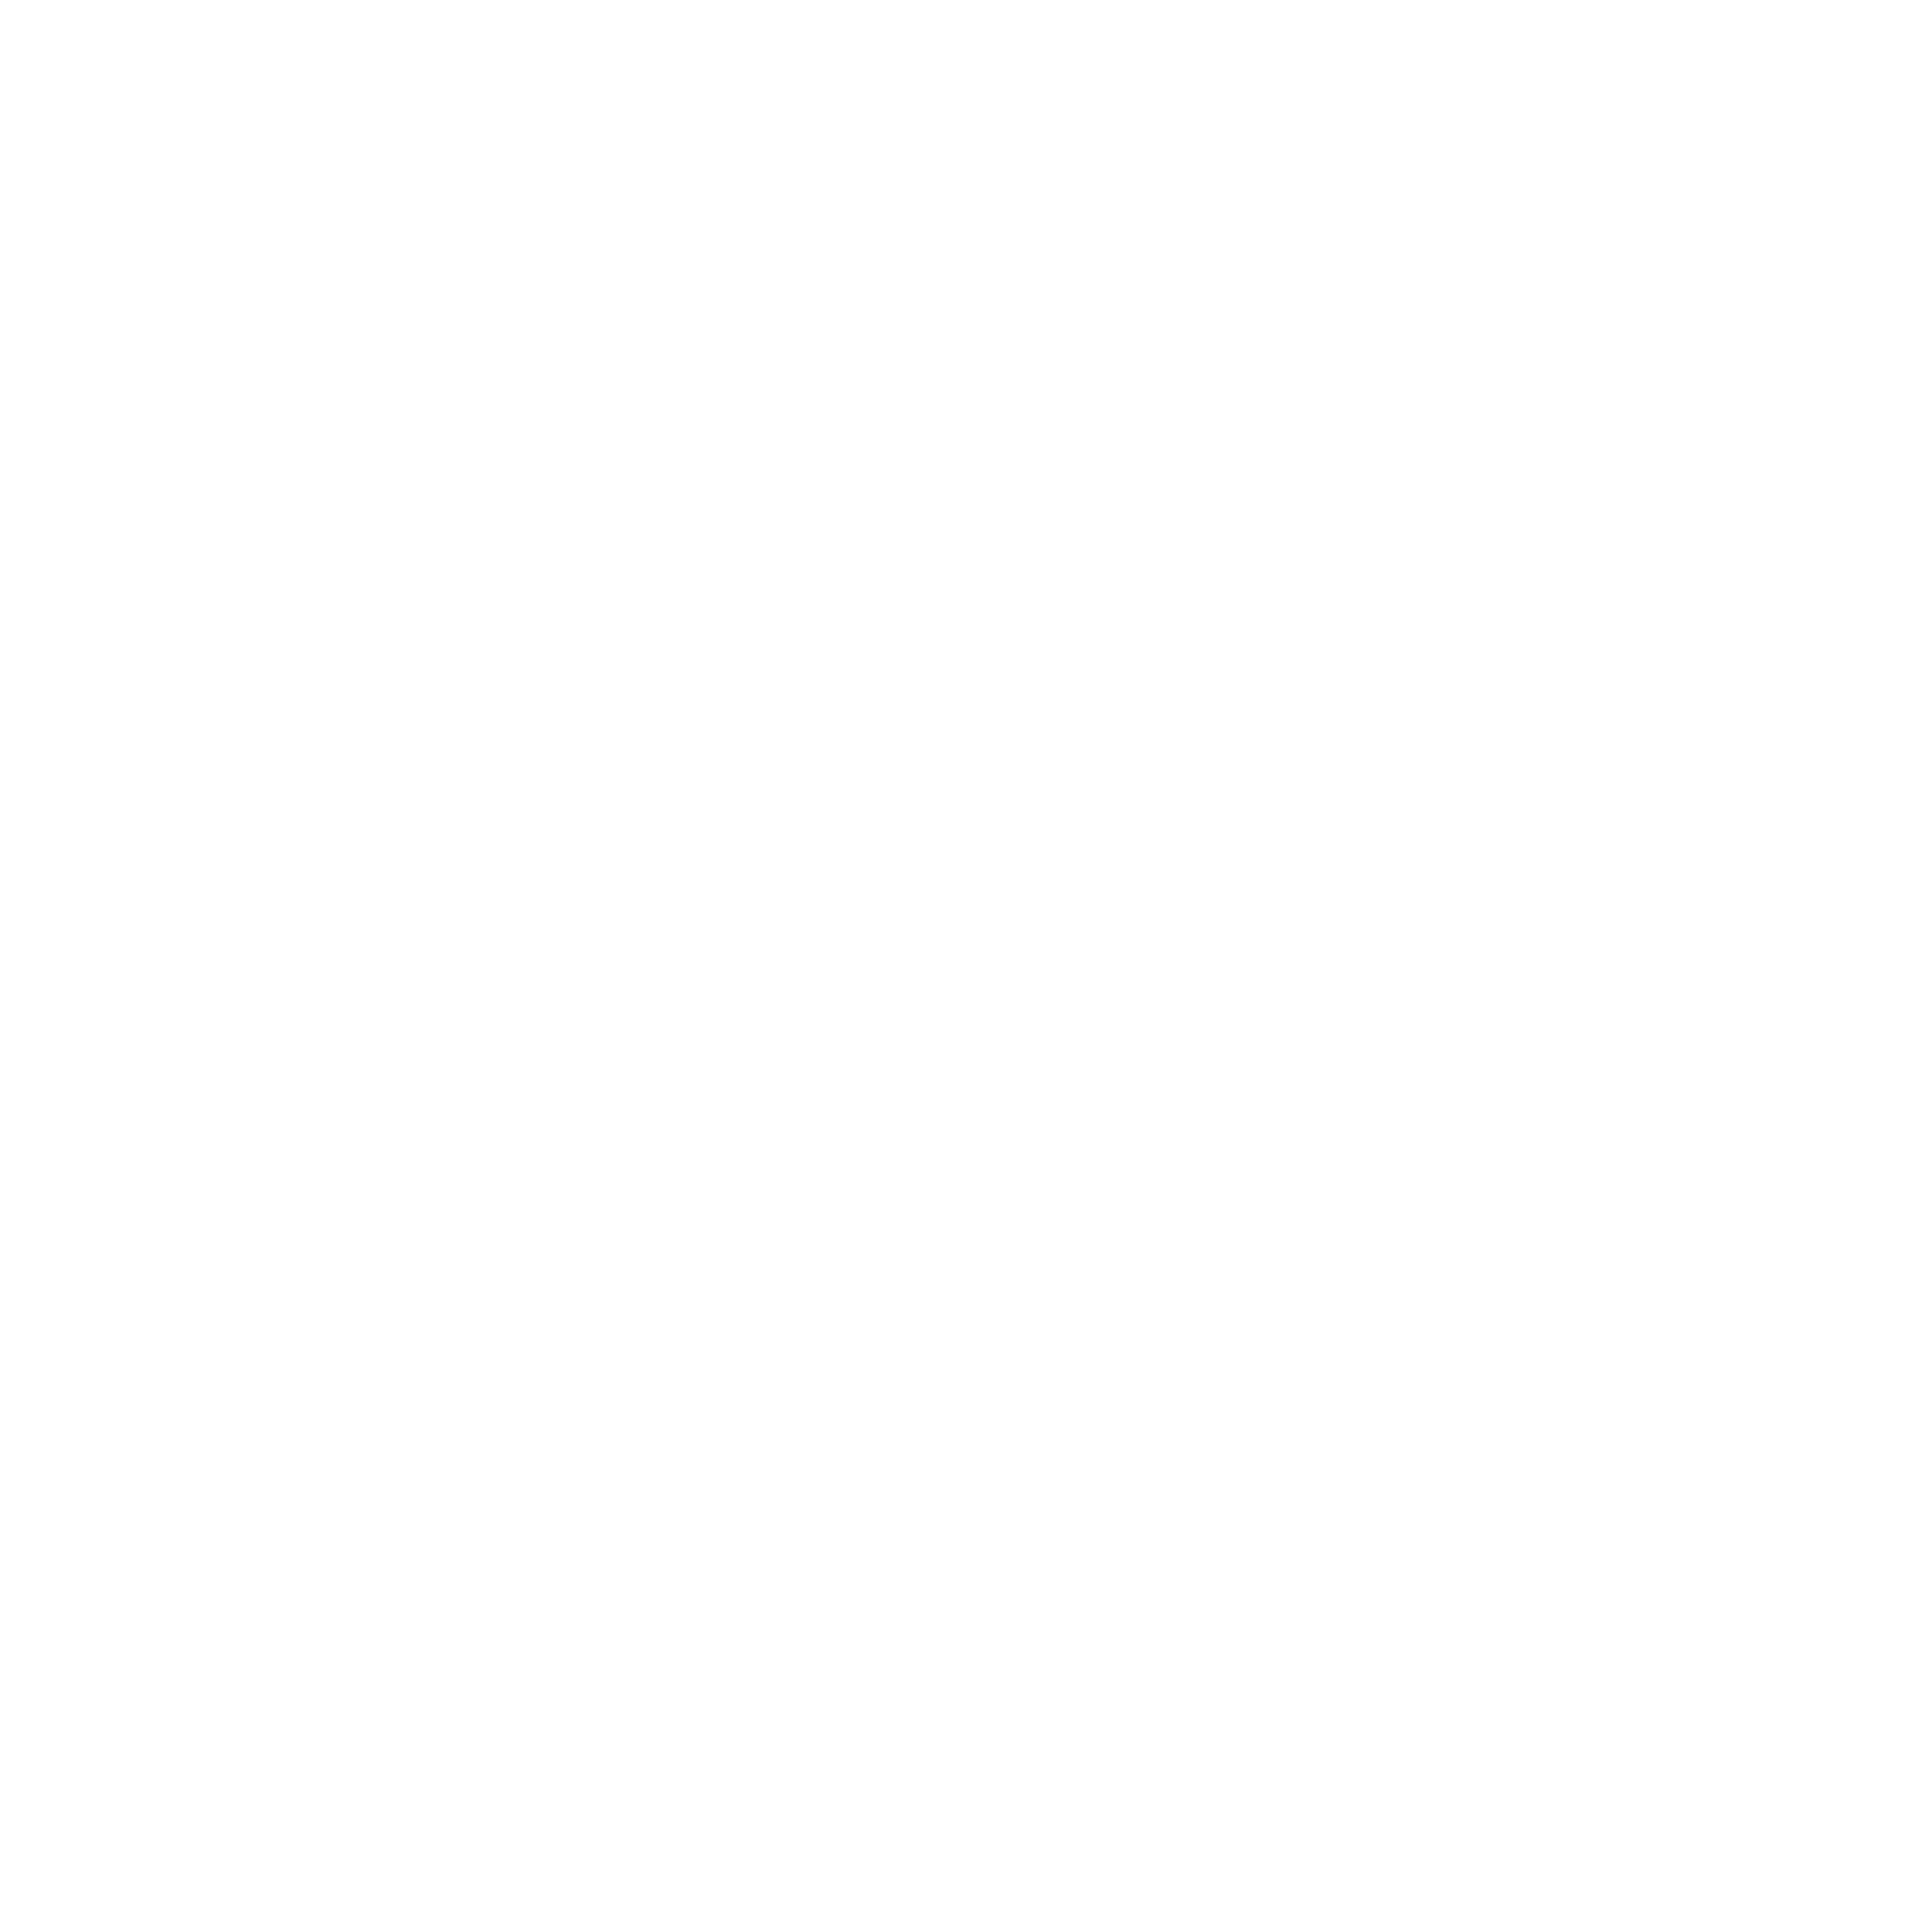 Hall Spars & Rigging Logo PNG Transparent & SVG Vector - Freebie Supply